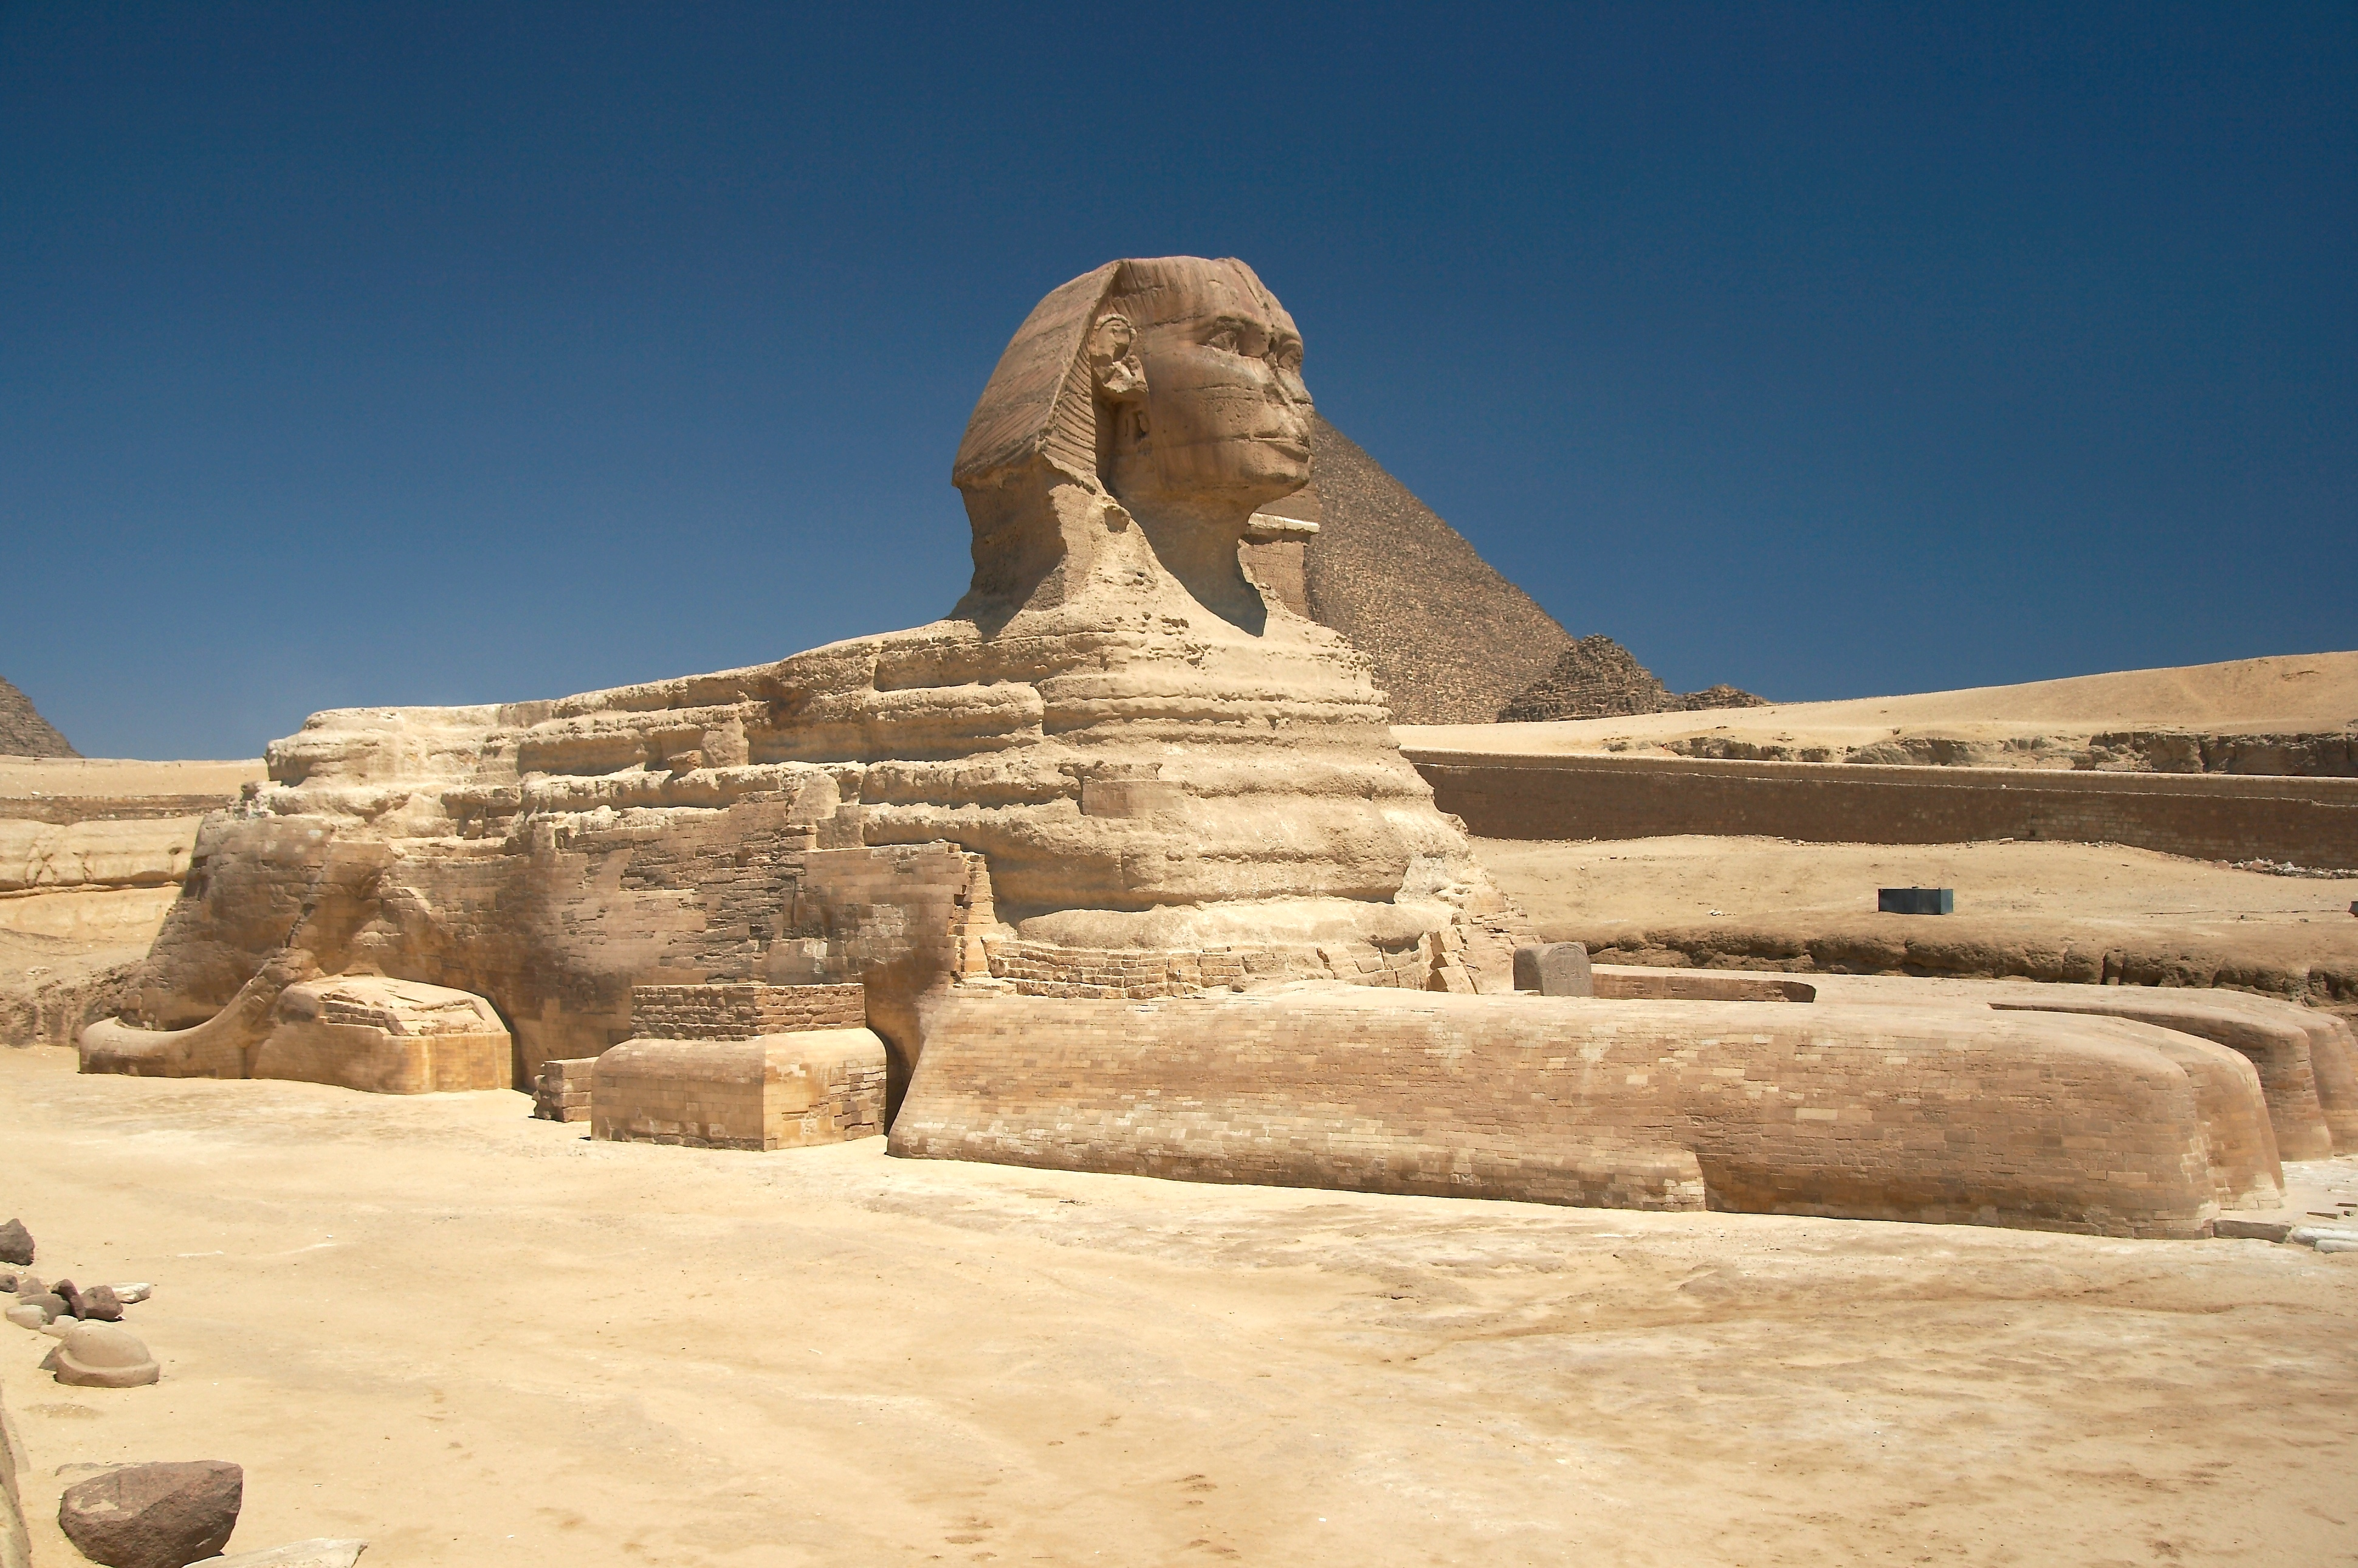 File:Great Sphinx of Giza - 20080716a.jpg